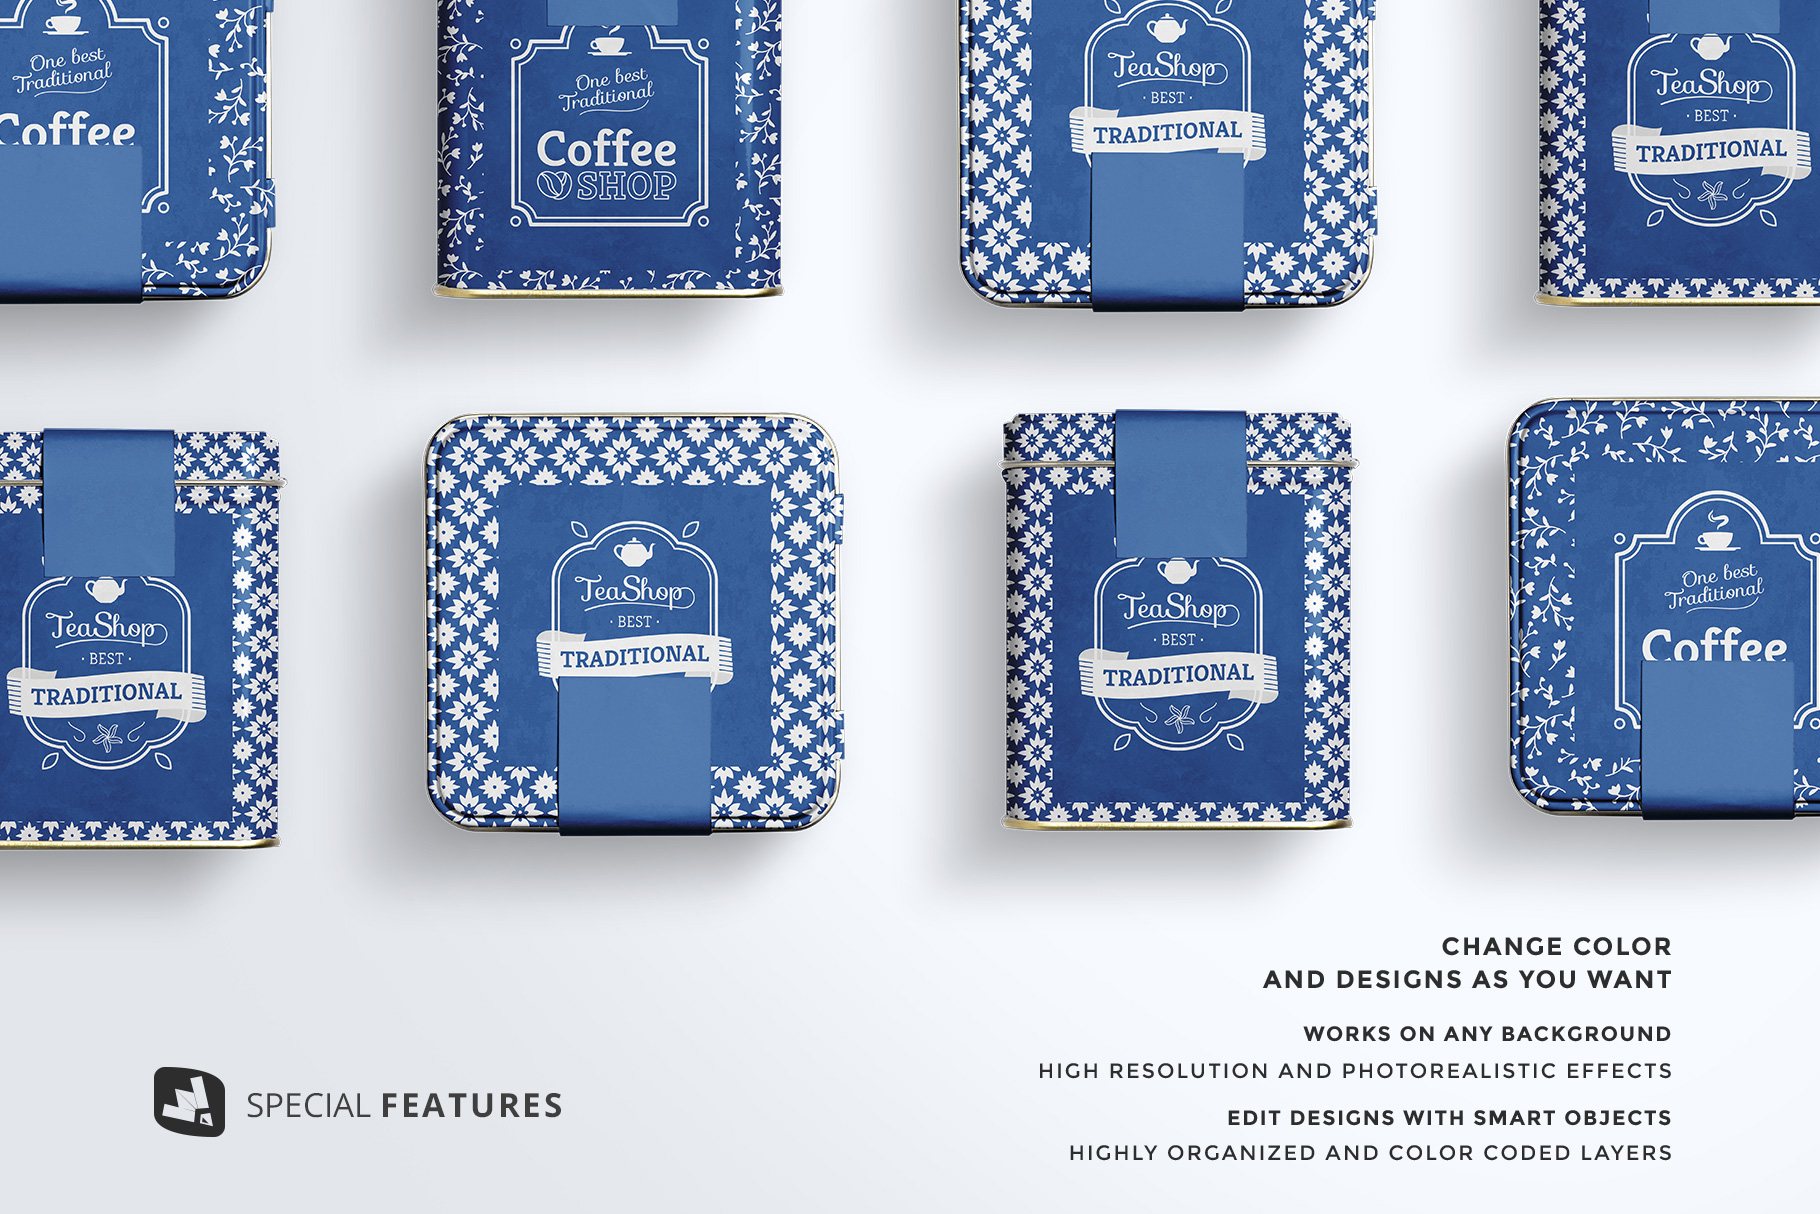 features of the organic tea tin box packaging mockup